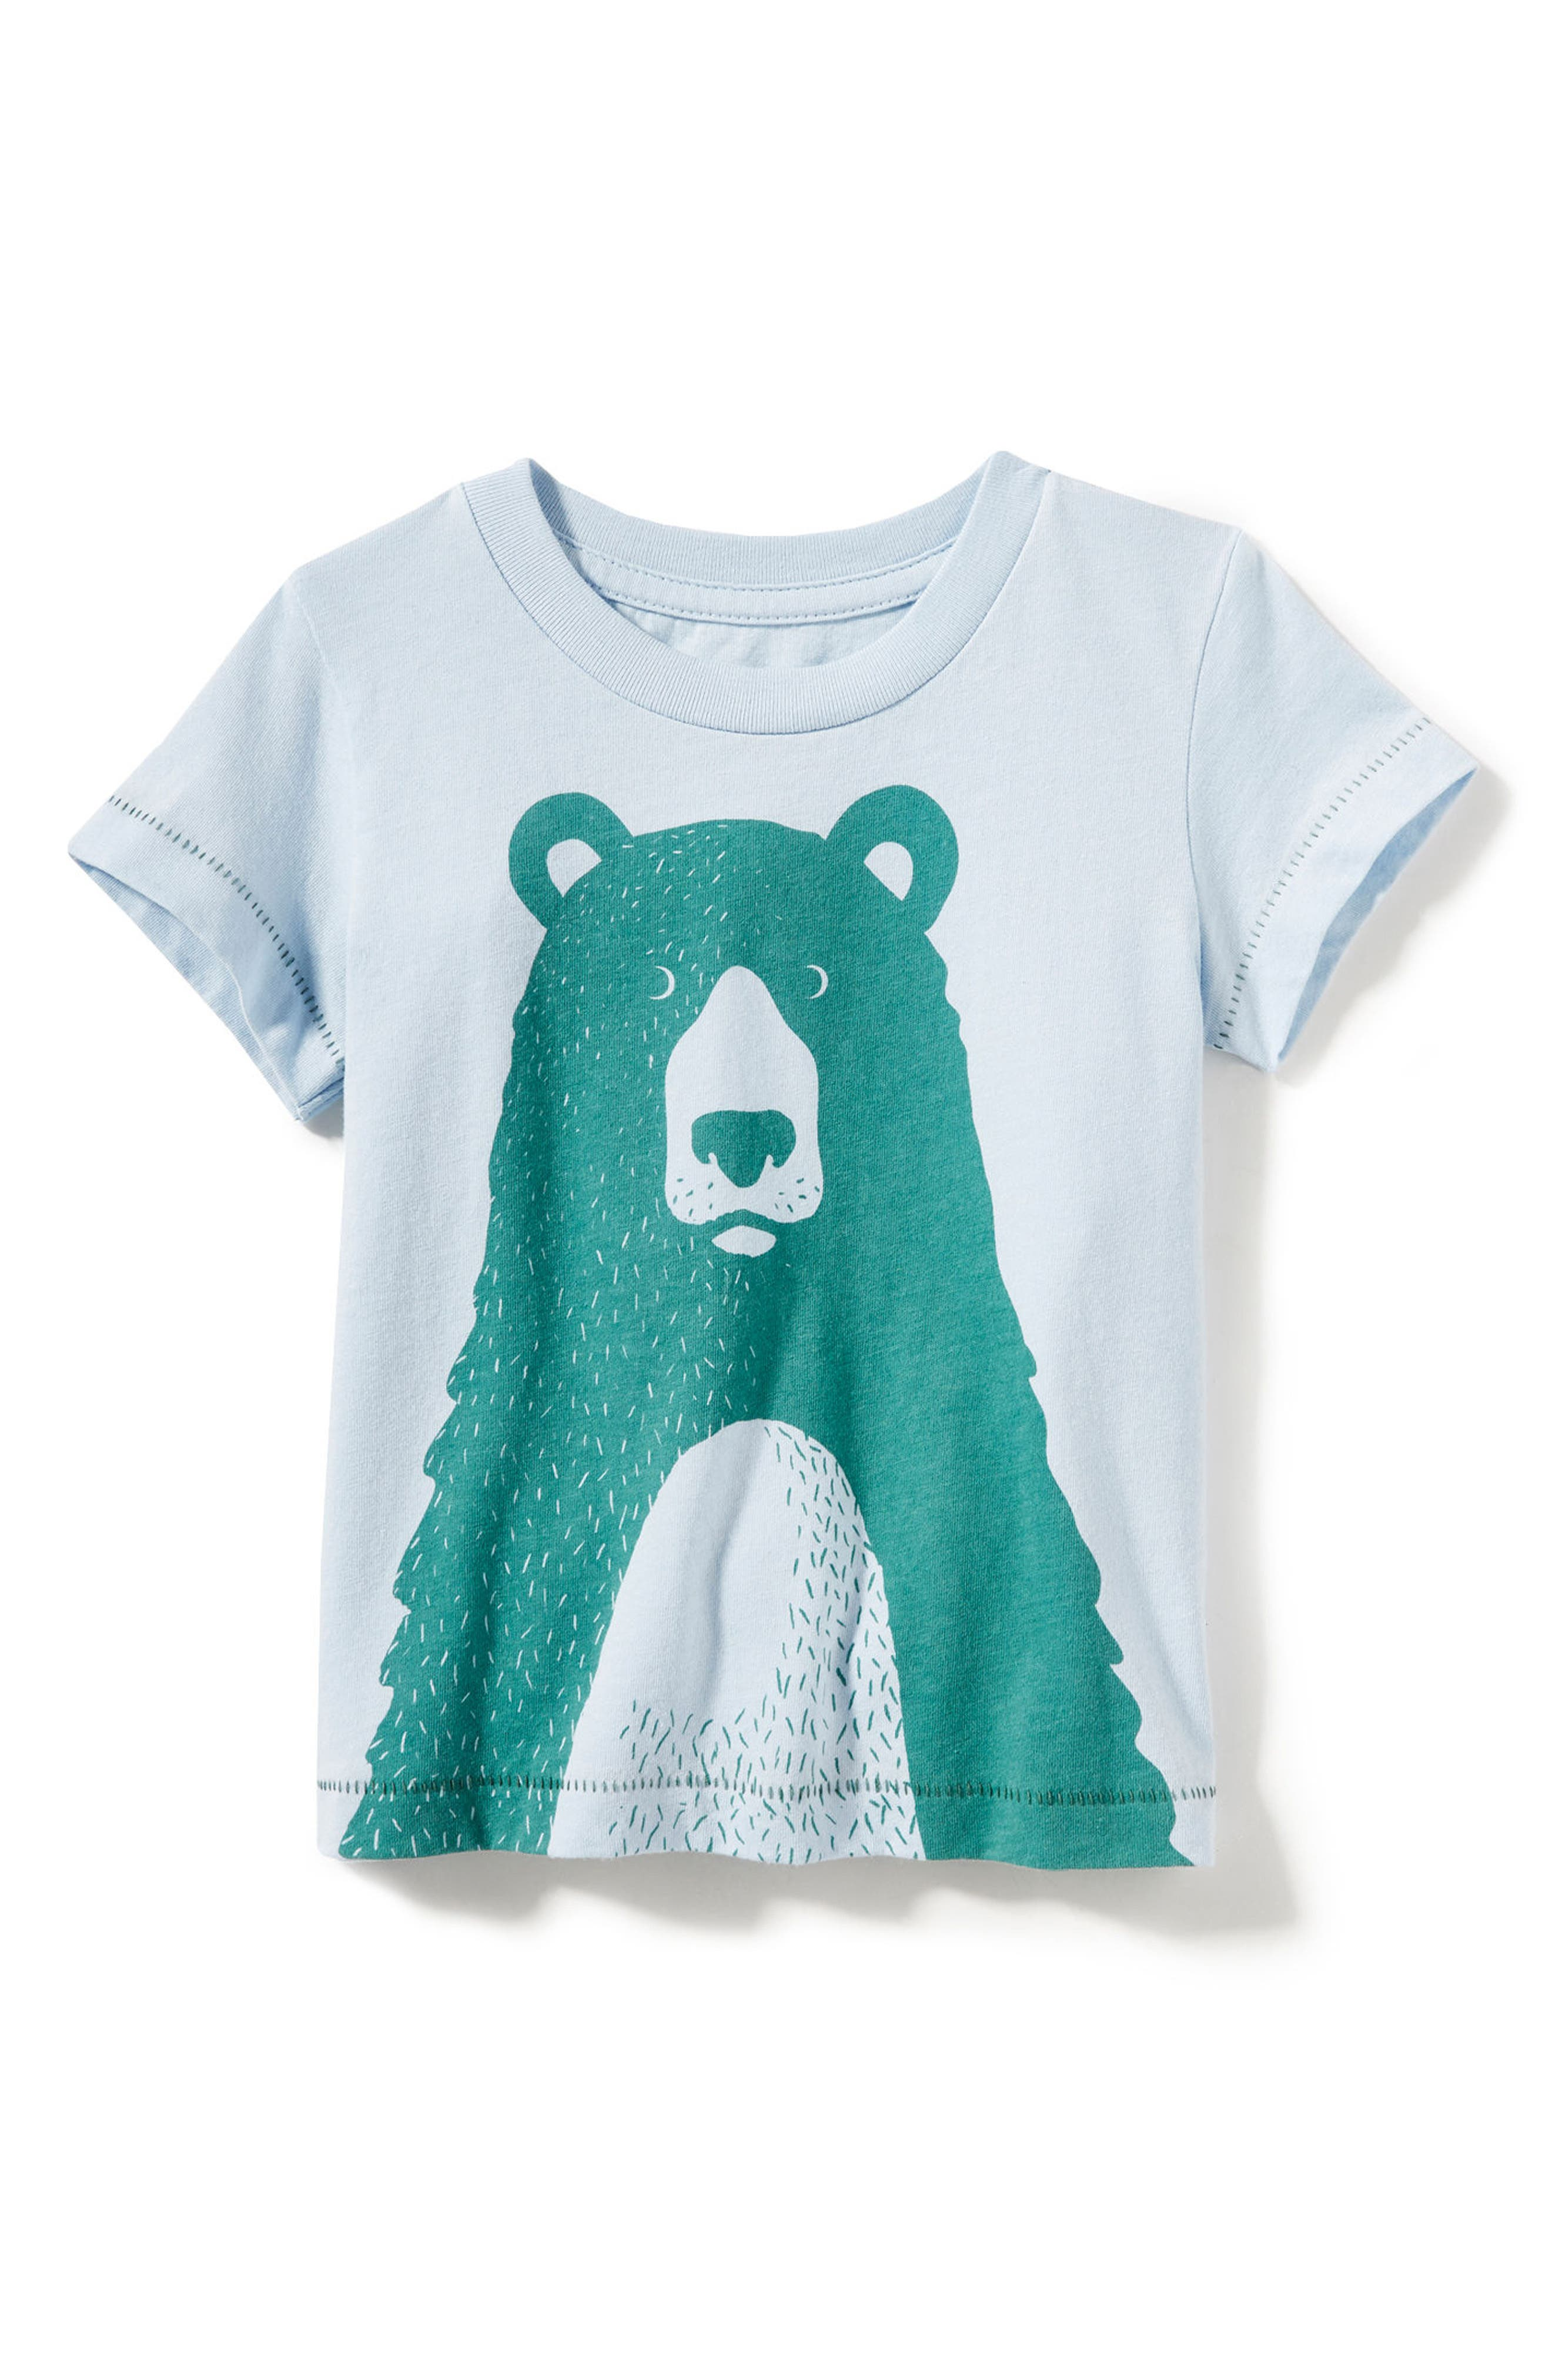 Main Image - Peek Big Bear Graphic T-Shirt (Baby Boys)